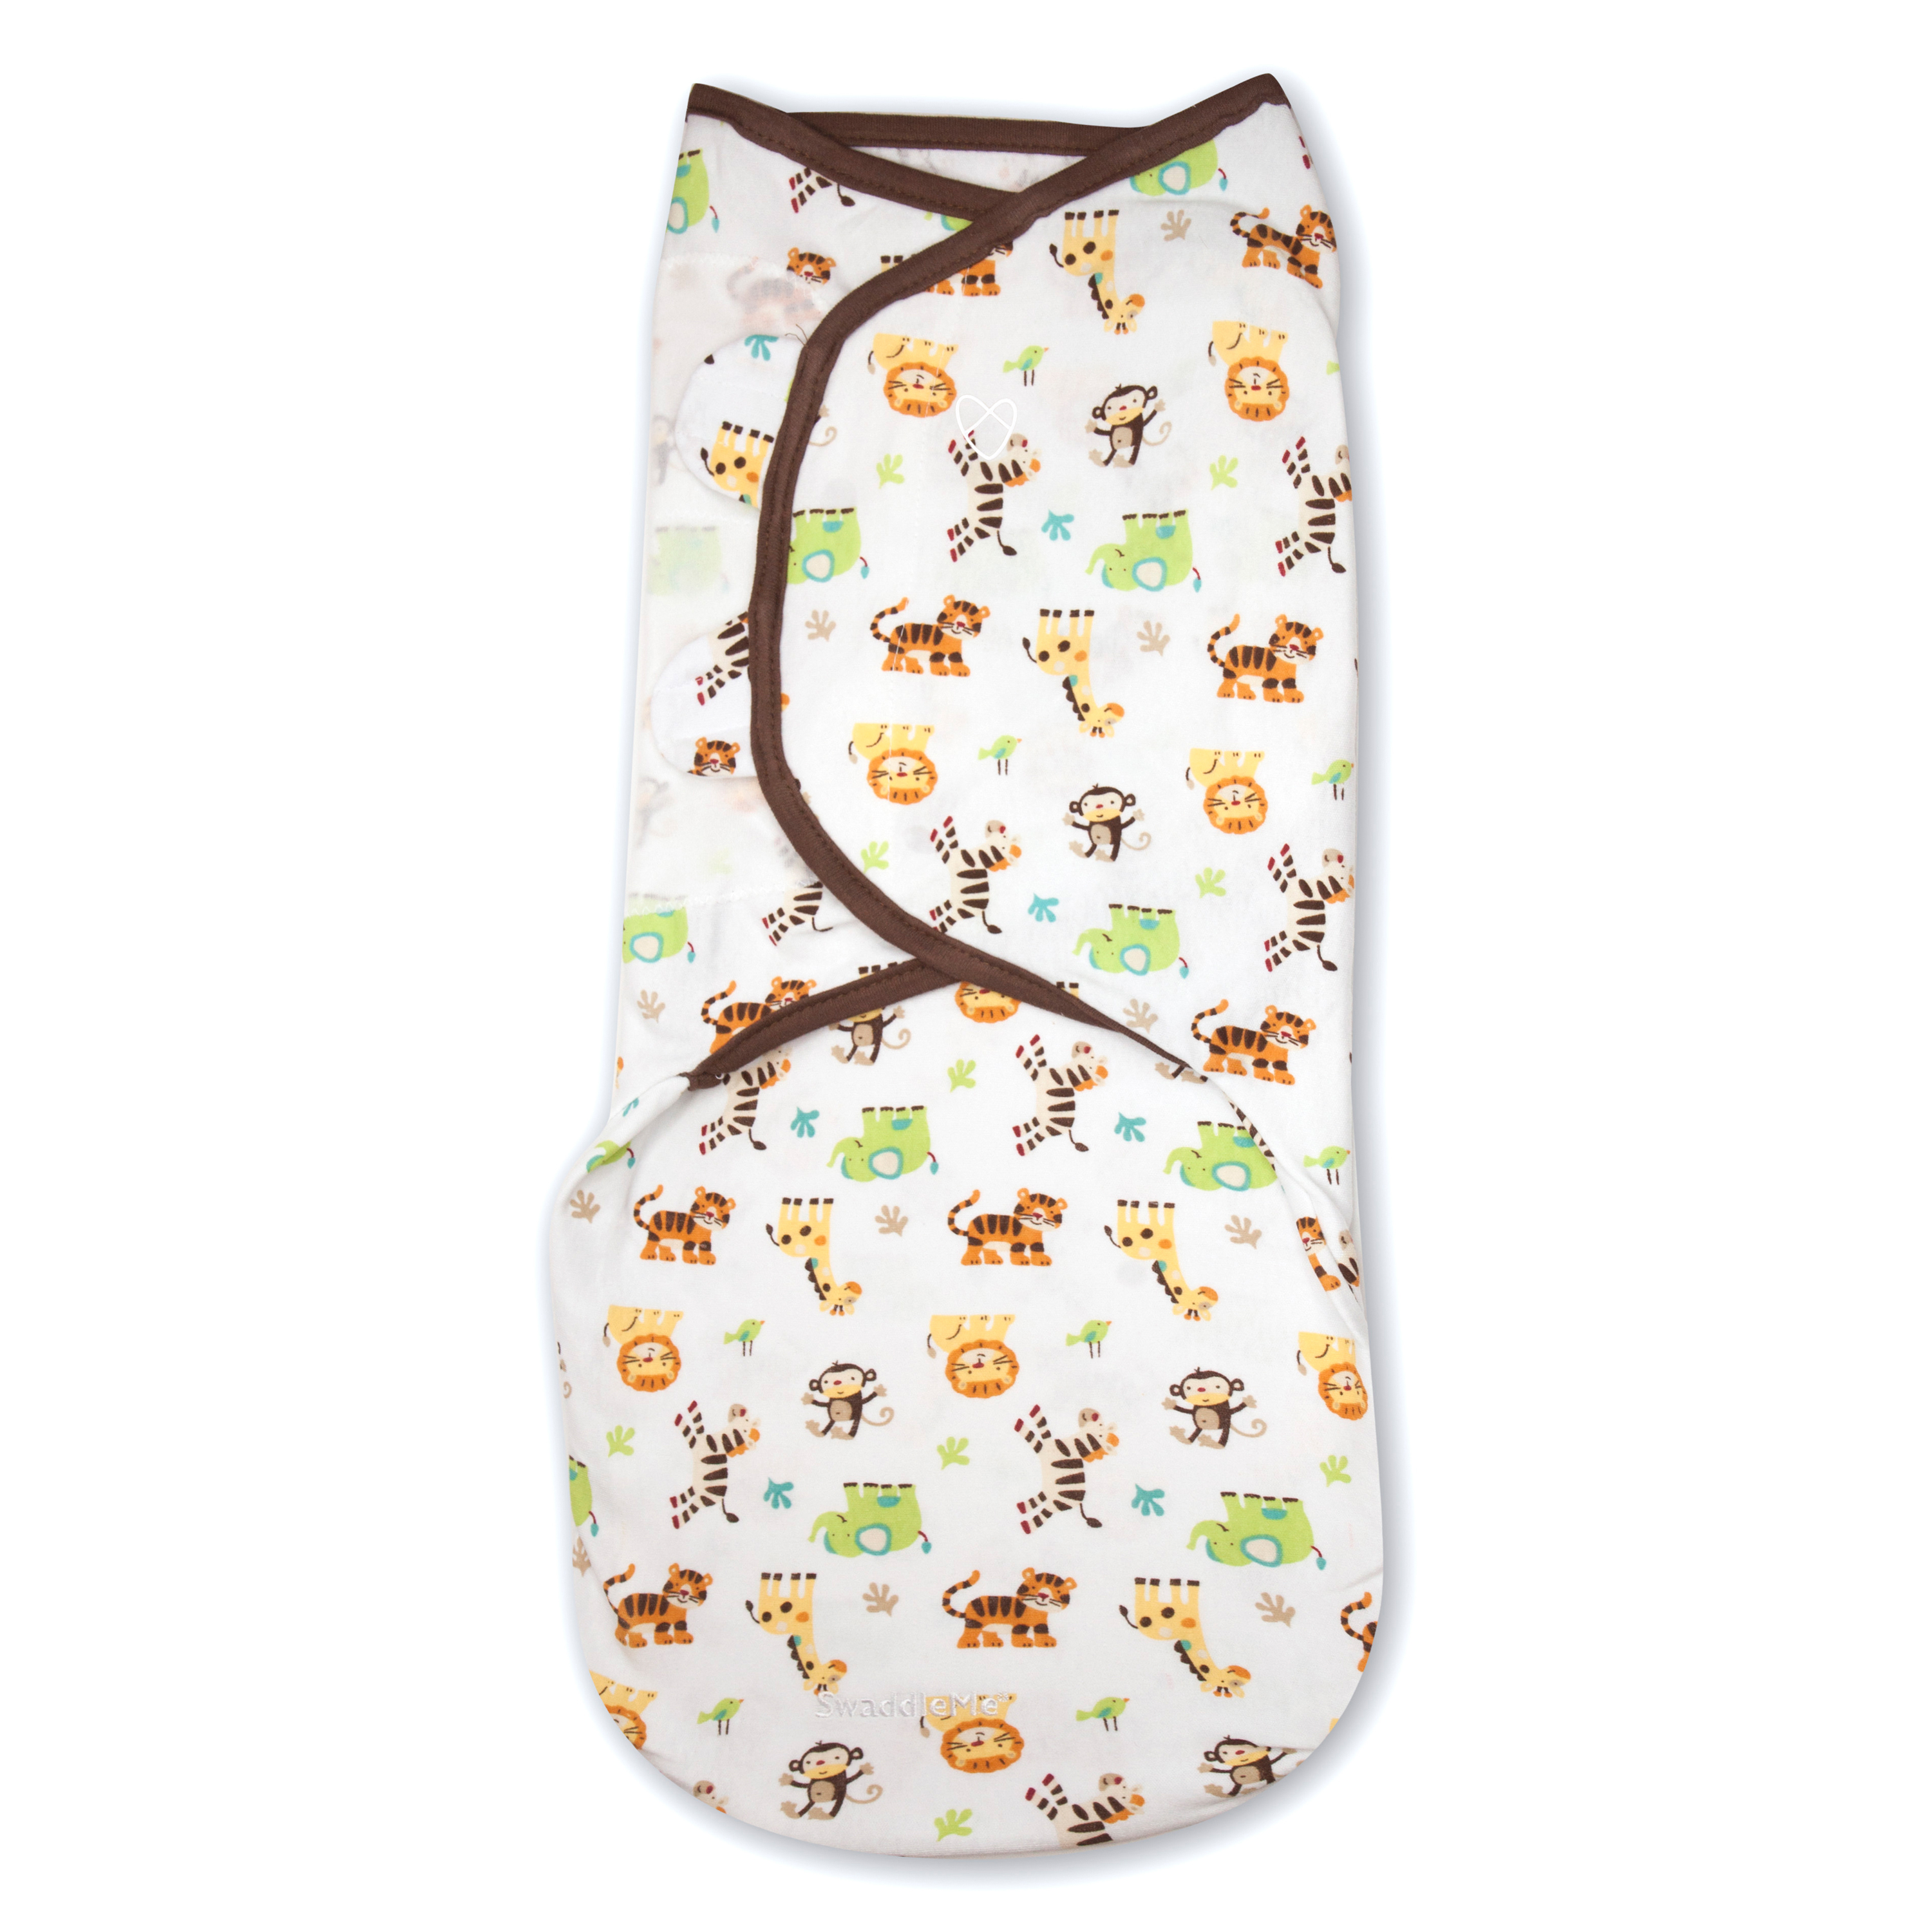 SwaddleMe? Original Swaddle - Jungle - LG - Unisex